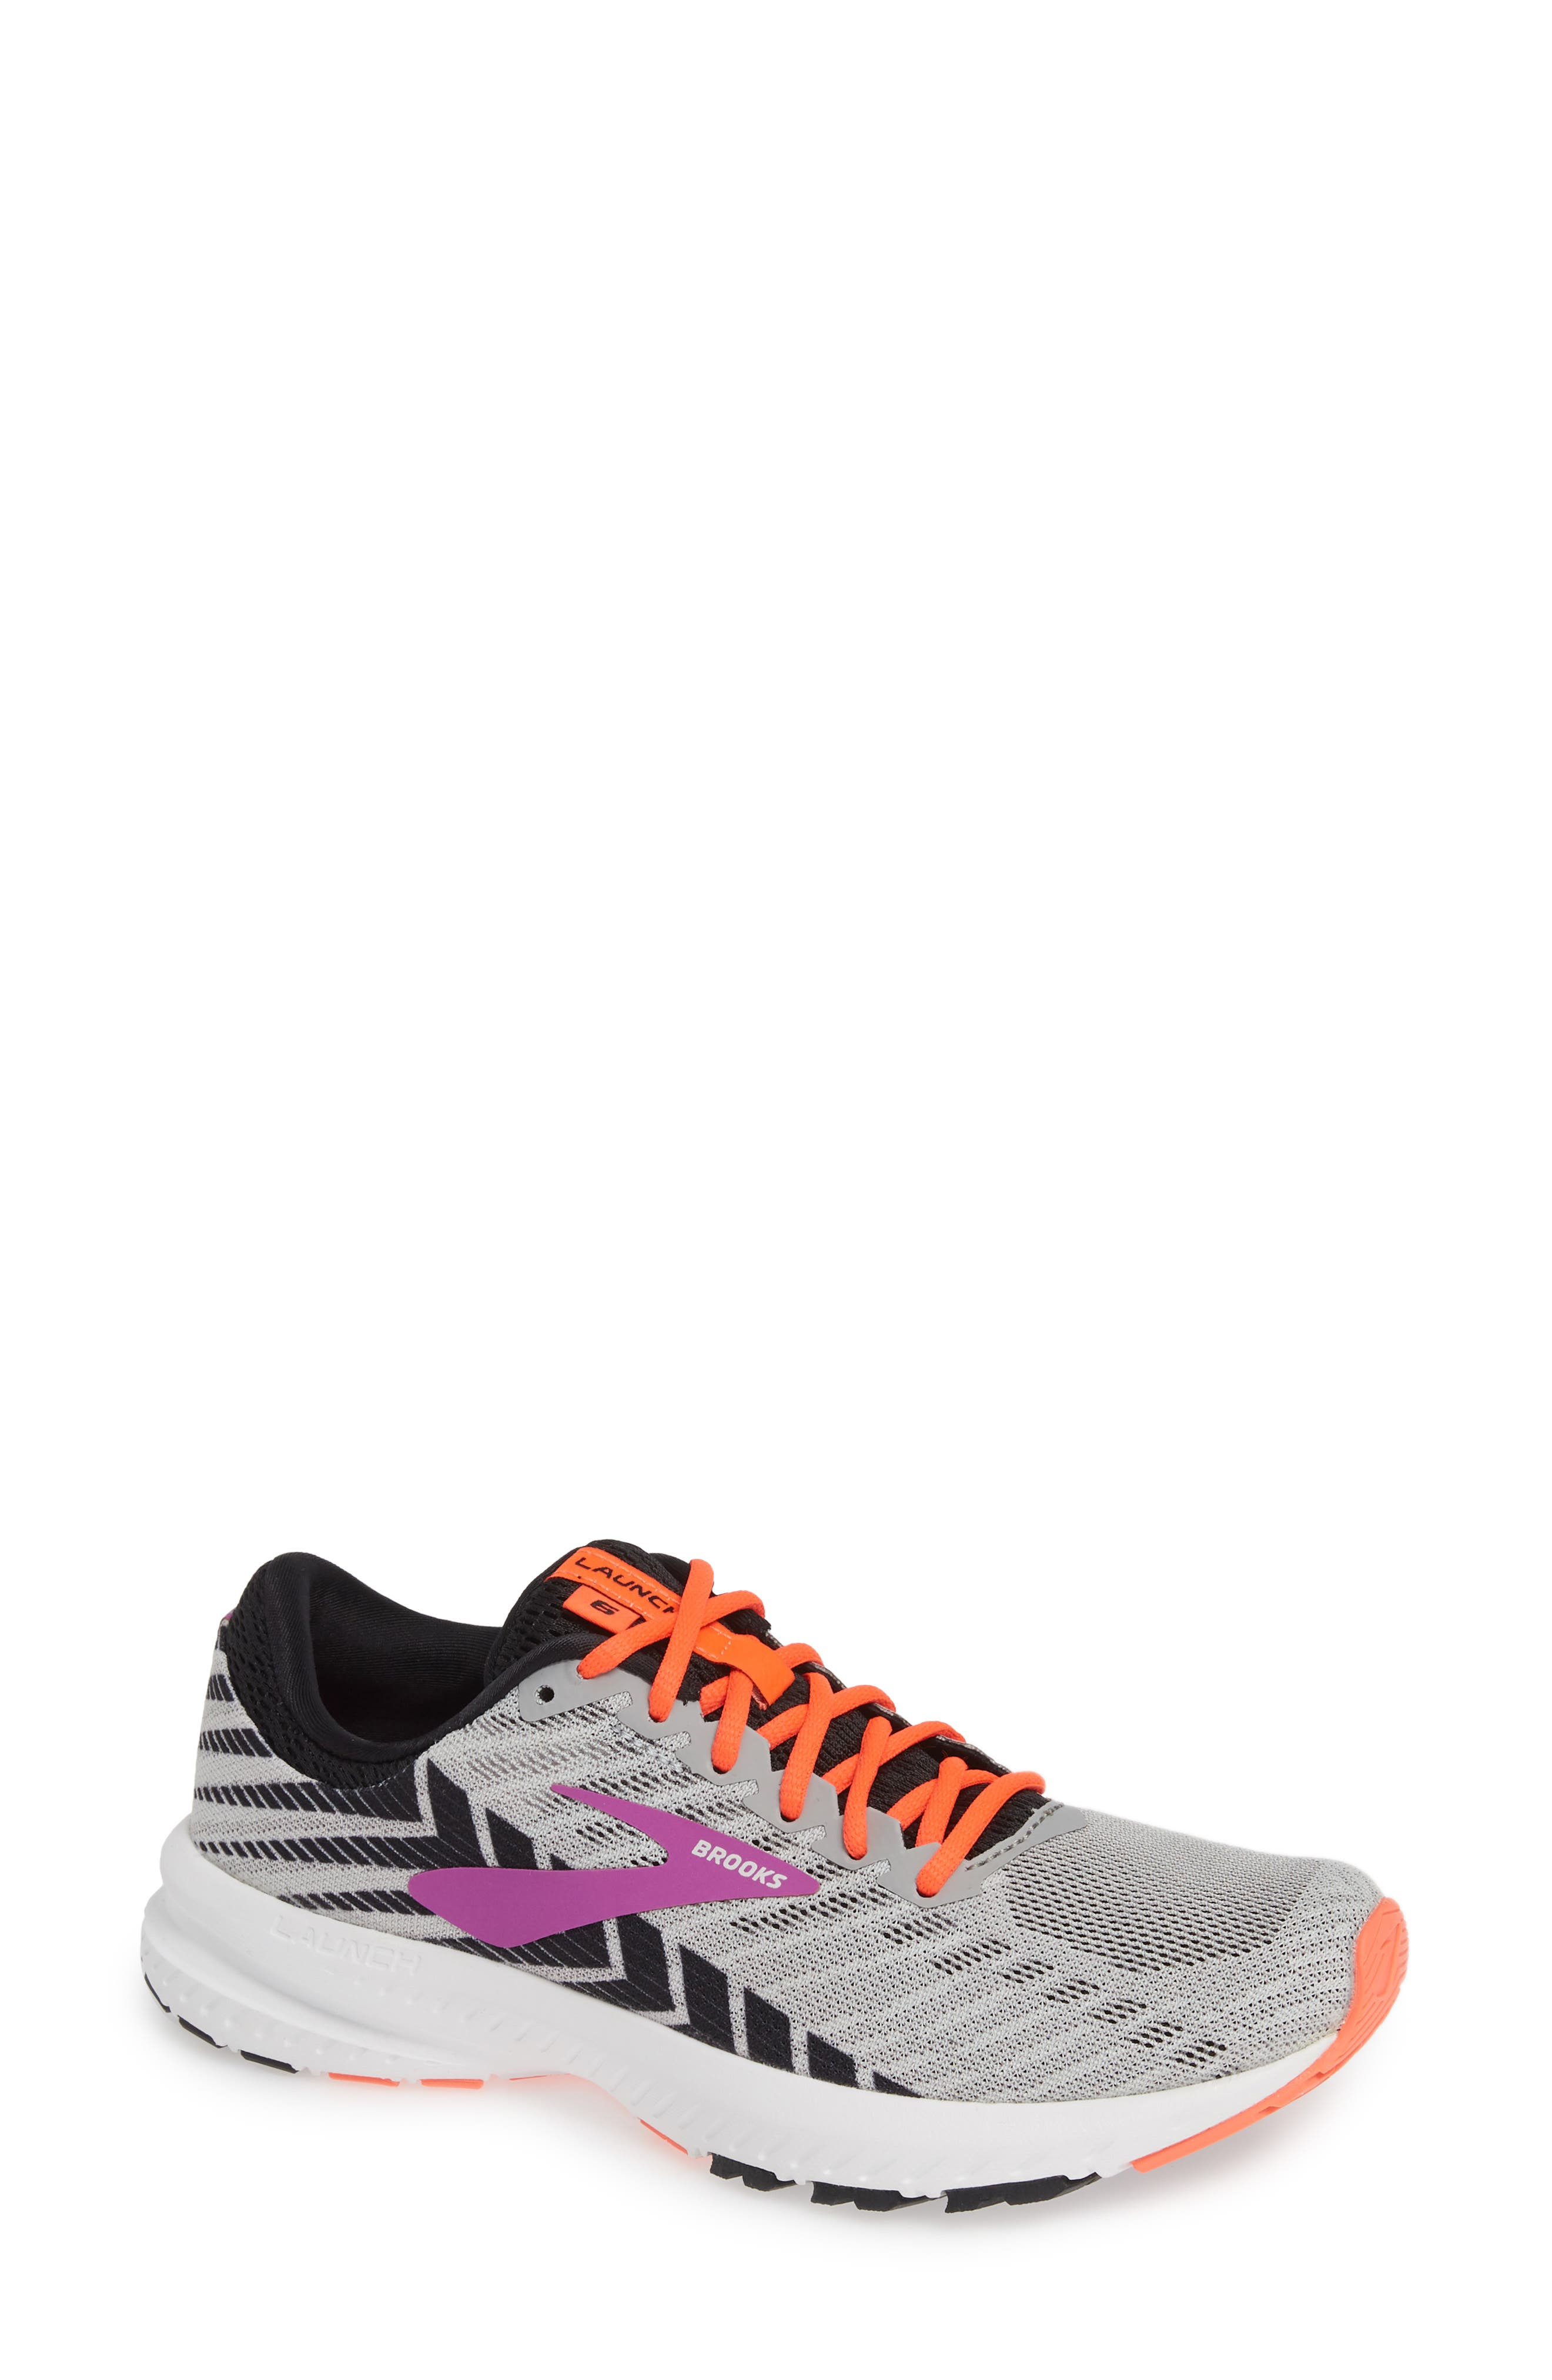 Launch 6 Running Shoe, Main, color, GREY/ BLACK/ PURPLE